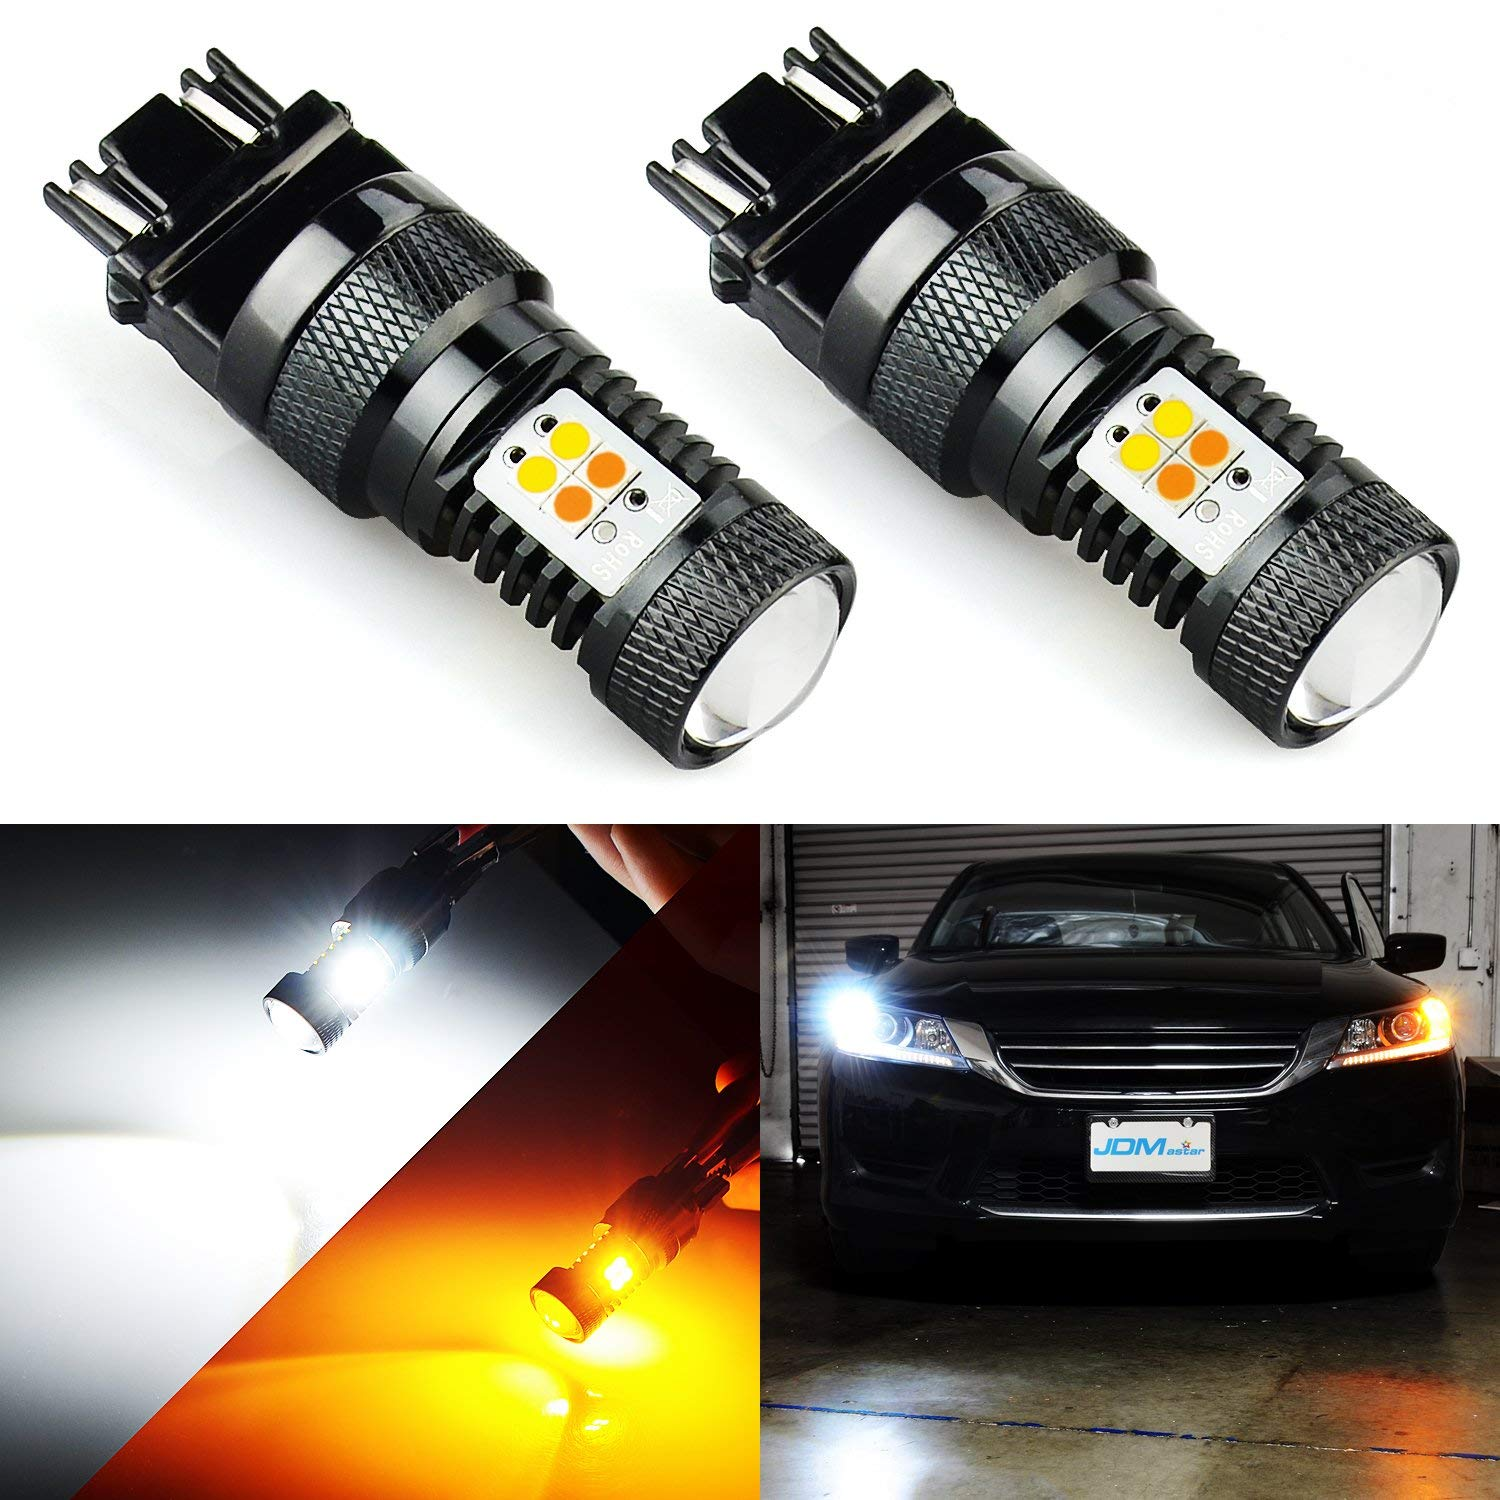 JDM ASTAR Extremely Bright 3030 Chipsets White/Yellow 3157 3155 3457 4157 Switchback LED Bulbs with Projector For Turn Signal Lights